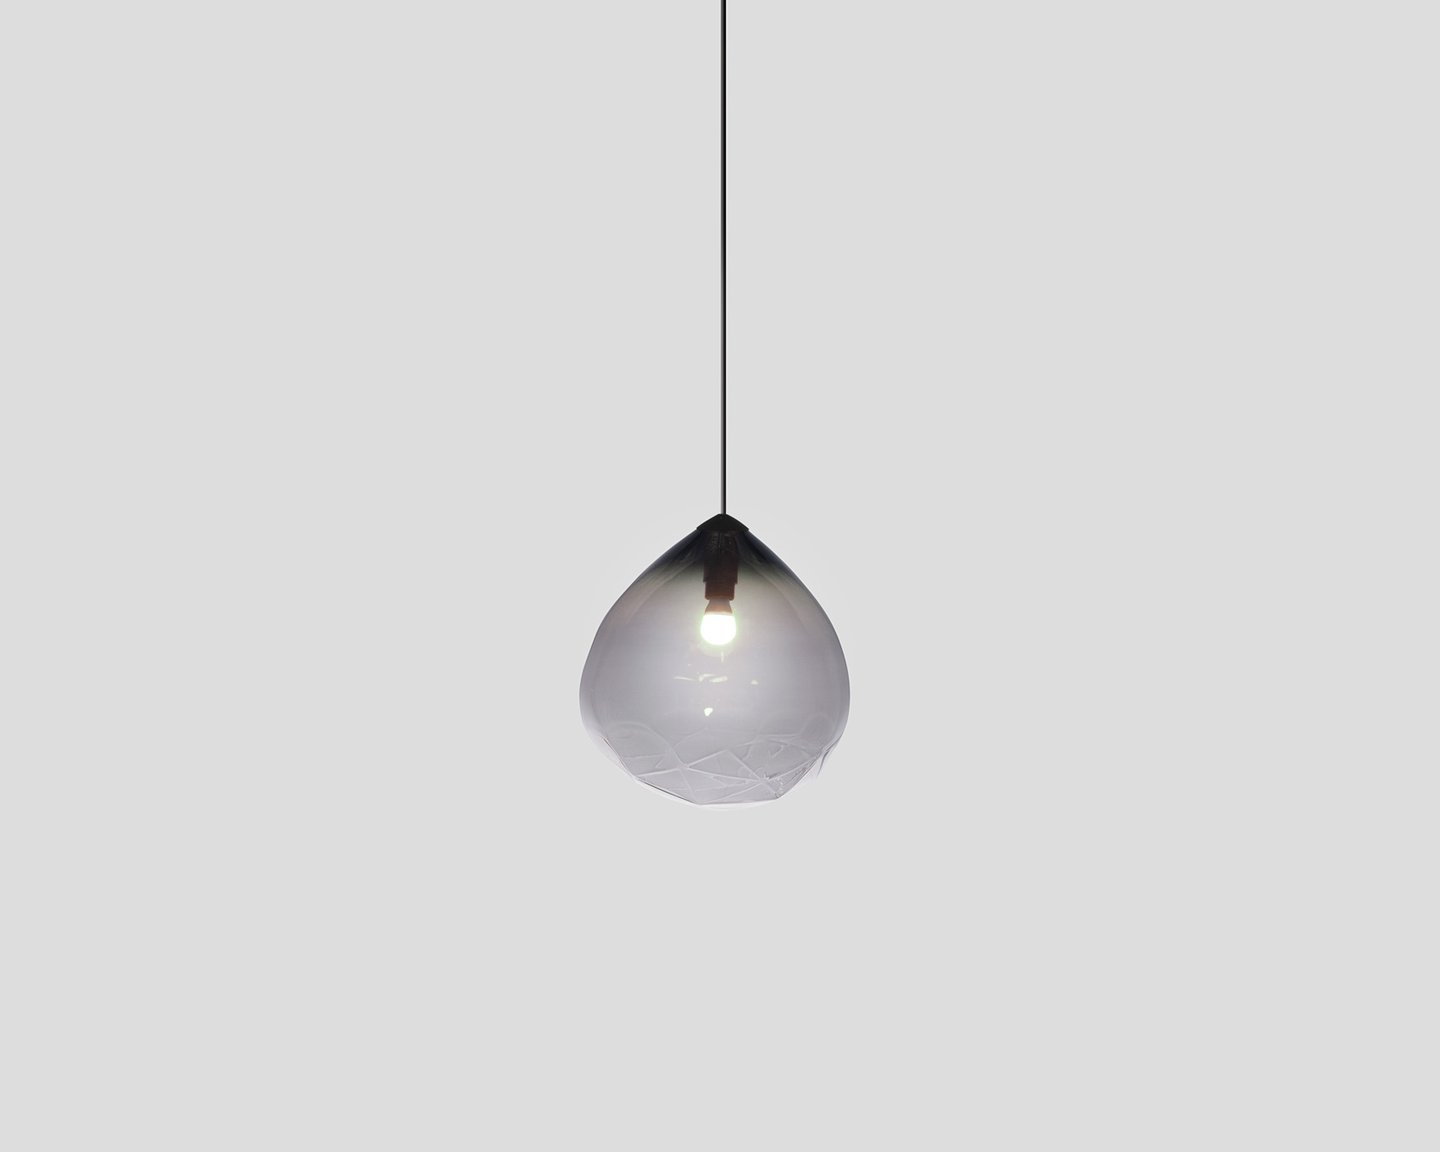 Image: uploads/2017_08/Resident-Parison-Pendant-by-Nat-Cheshire---Dark-10--BLK.jpg